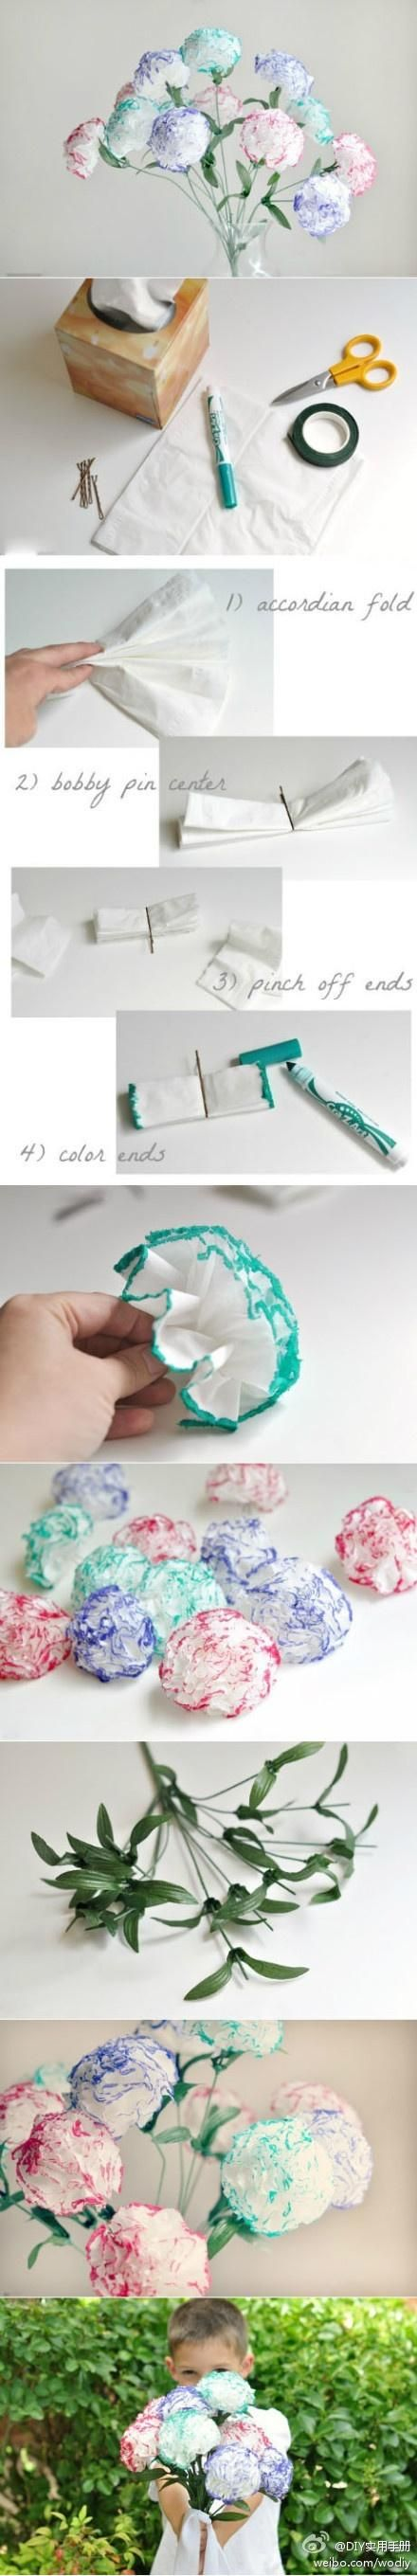 DIY tissue paper flowers! Great spring craft that lasts, and also a great gift/ get well idea for someone under the weather.: